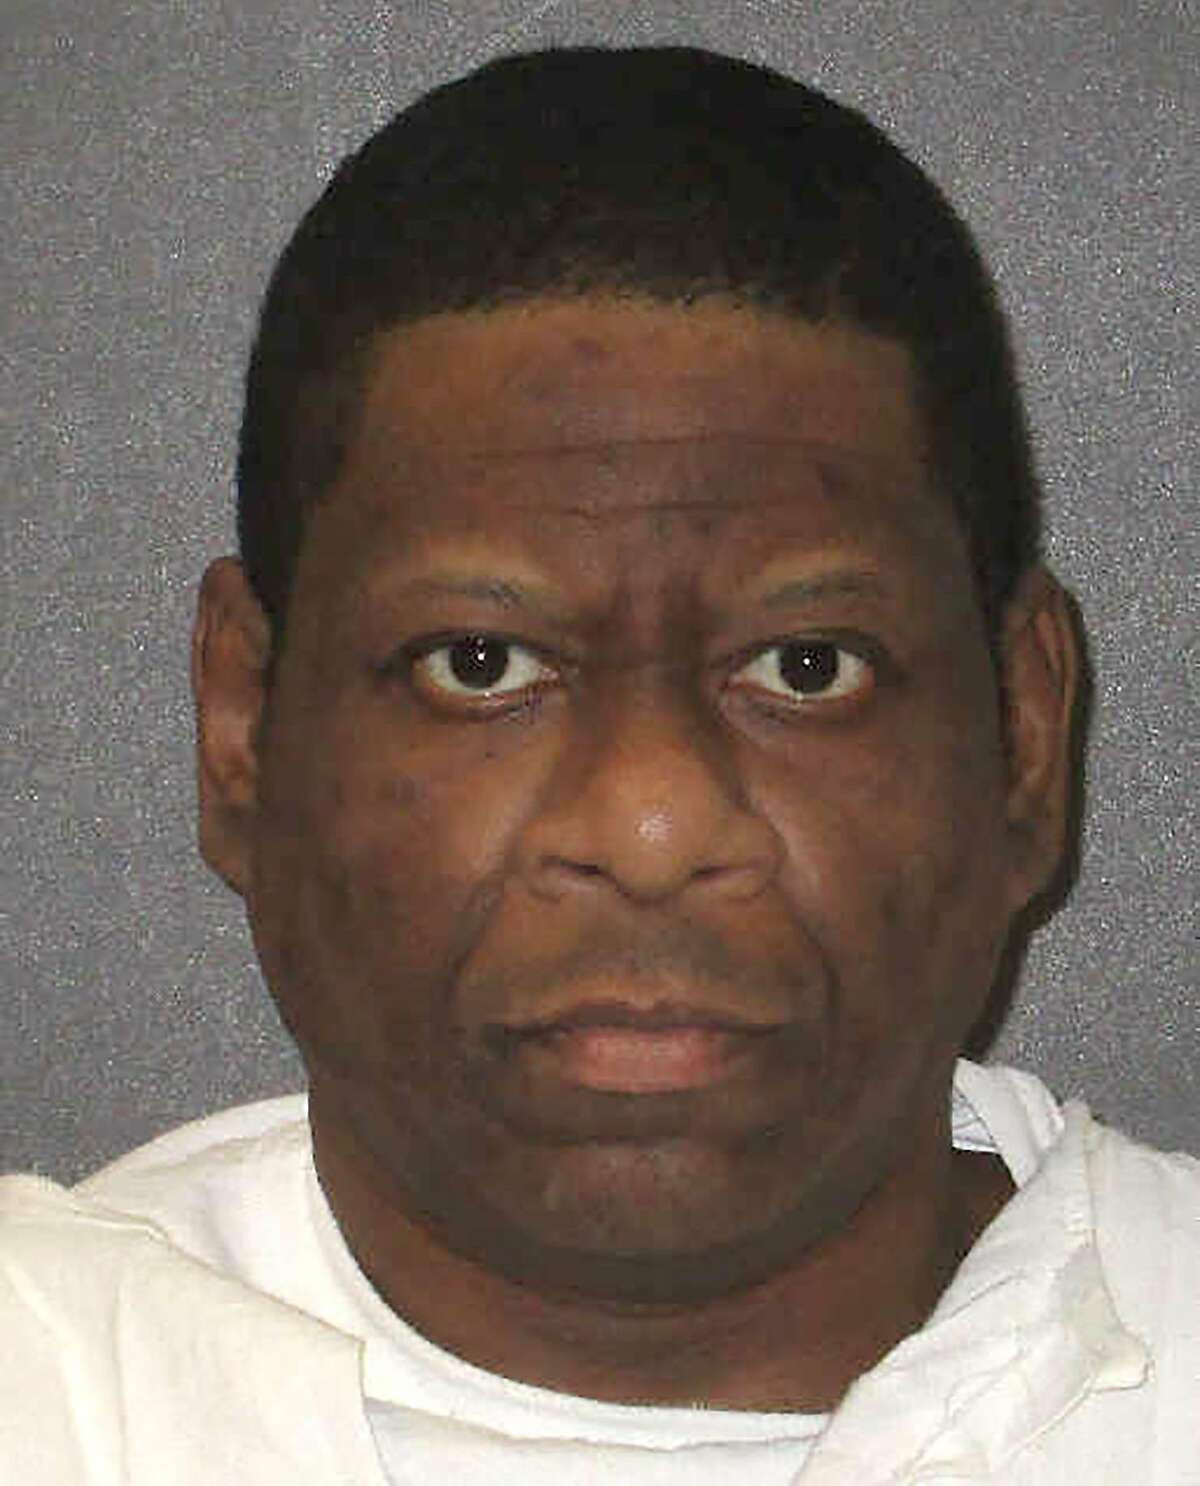 Rodney Reed, a black man, was convicted in the brutal raping and killing of 19-year-old Stacey Stites, a white woman, in April 1996. He is scheduled to die by lethal injection in Texas on Wednesday, Nov. 20.